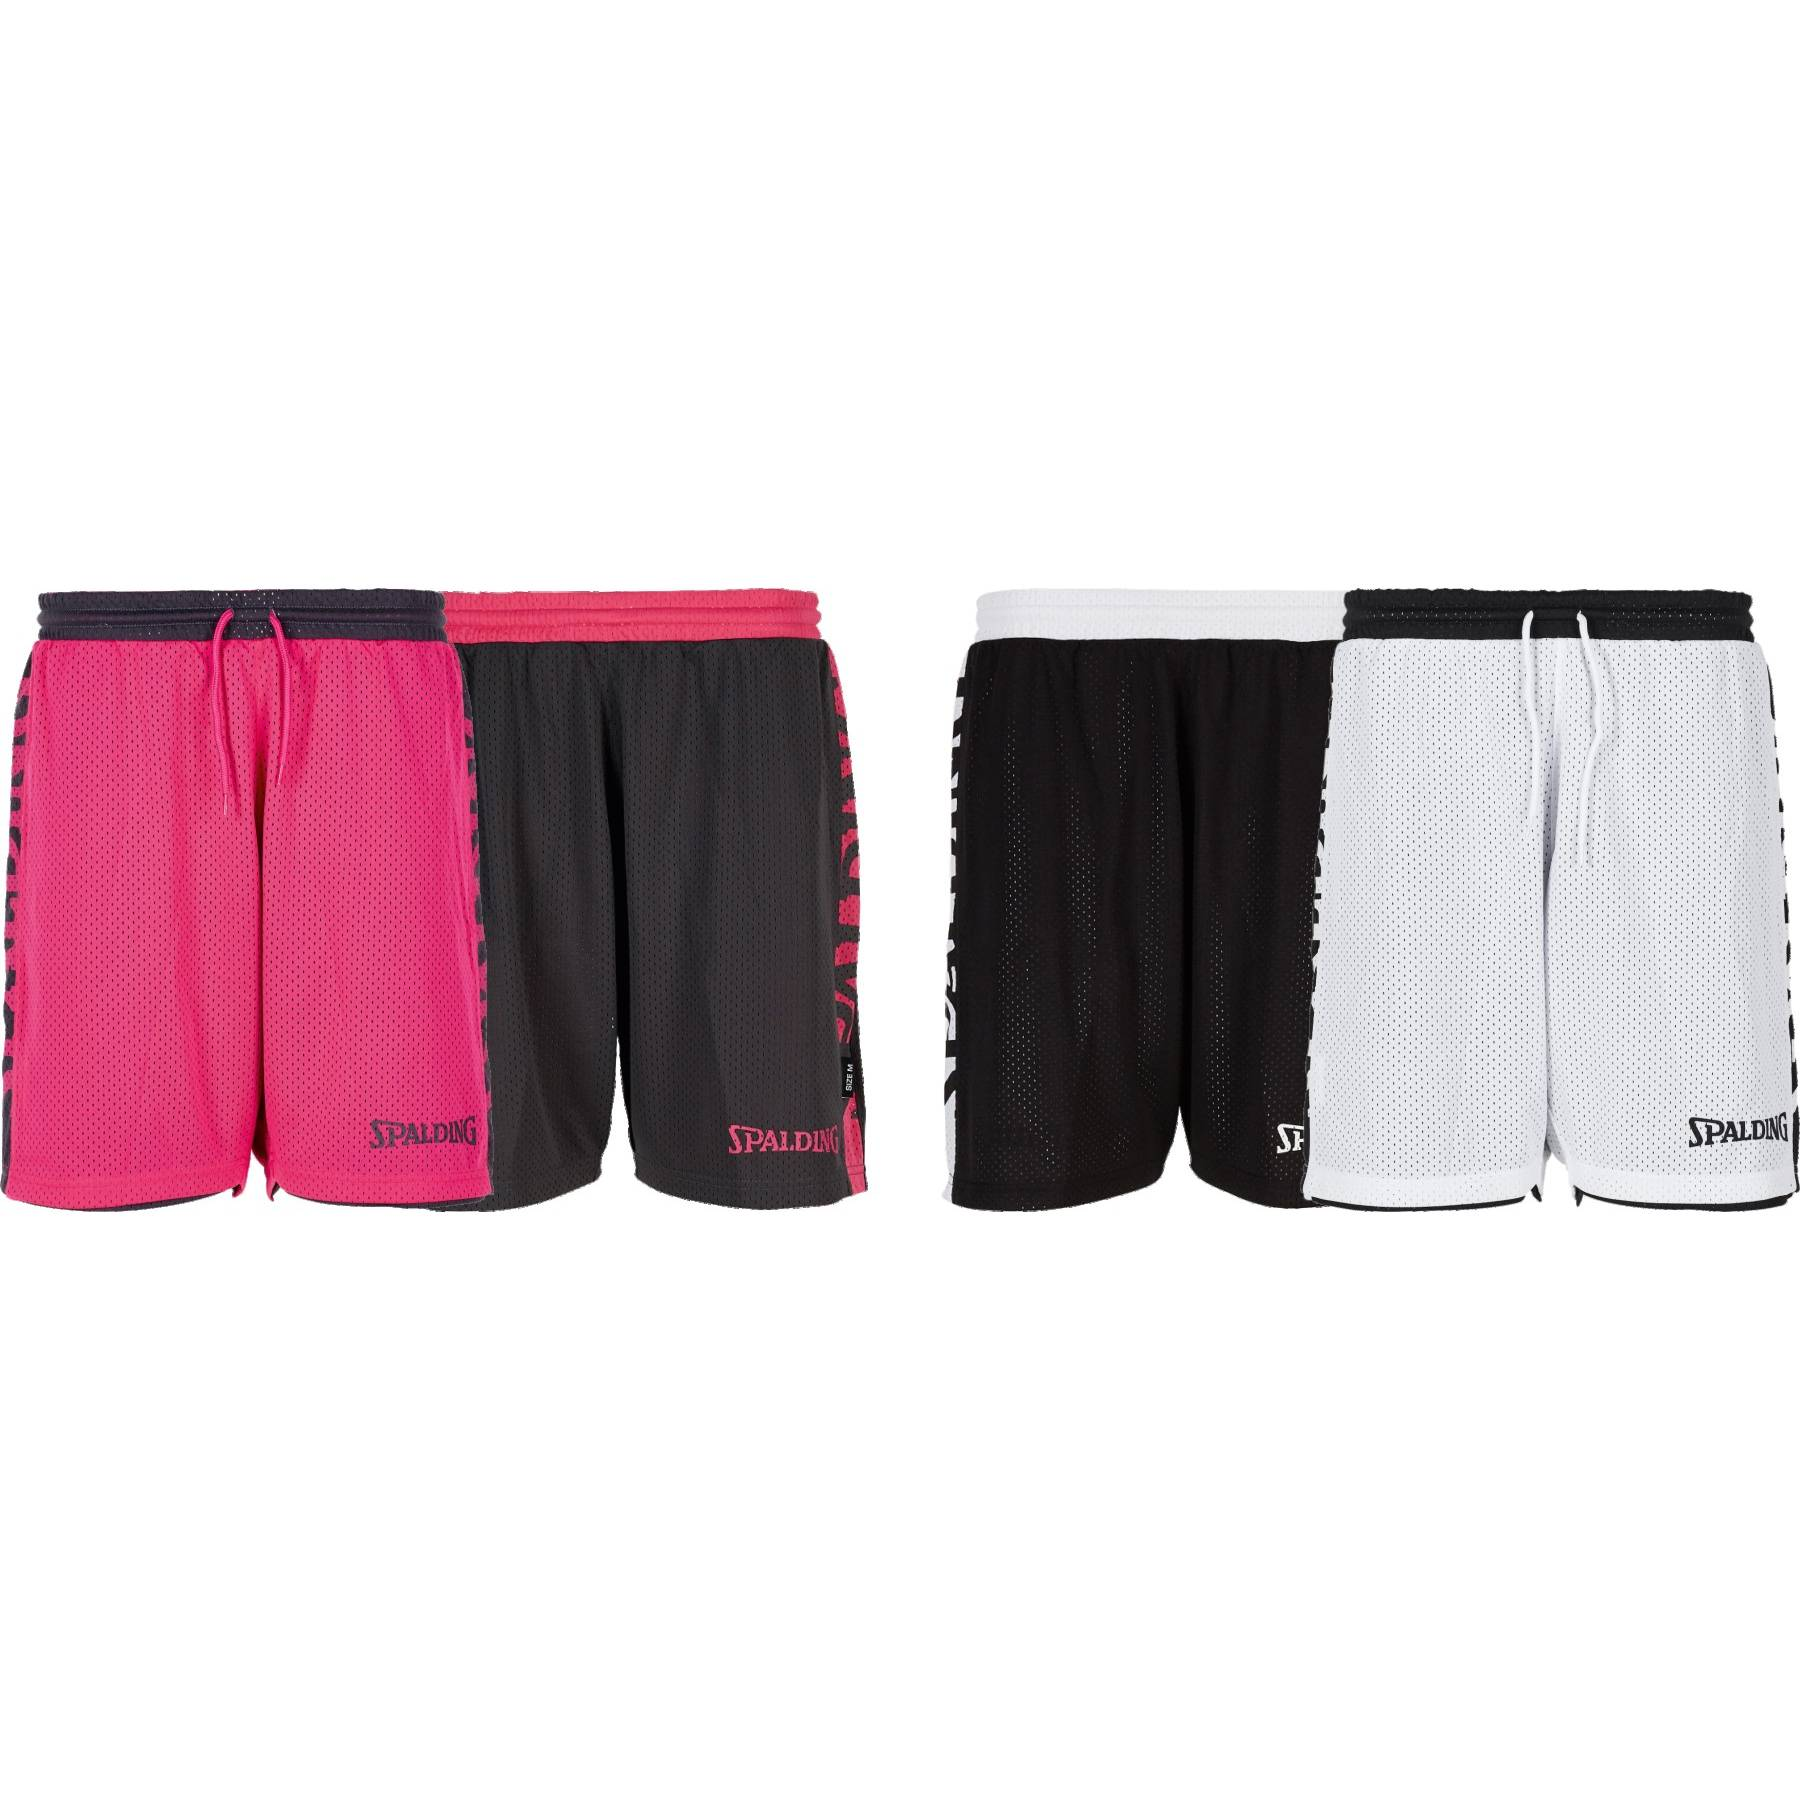 Teamwear - Spalding Women's Essential Reversible Shorts (v2019)